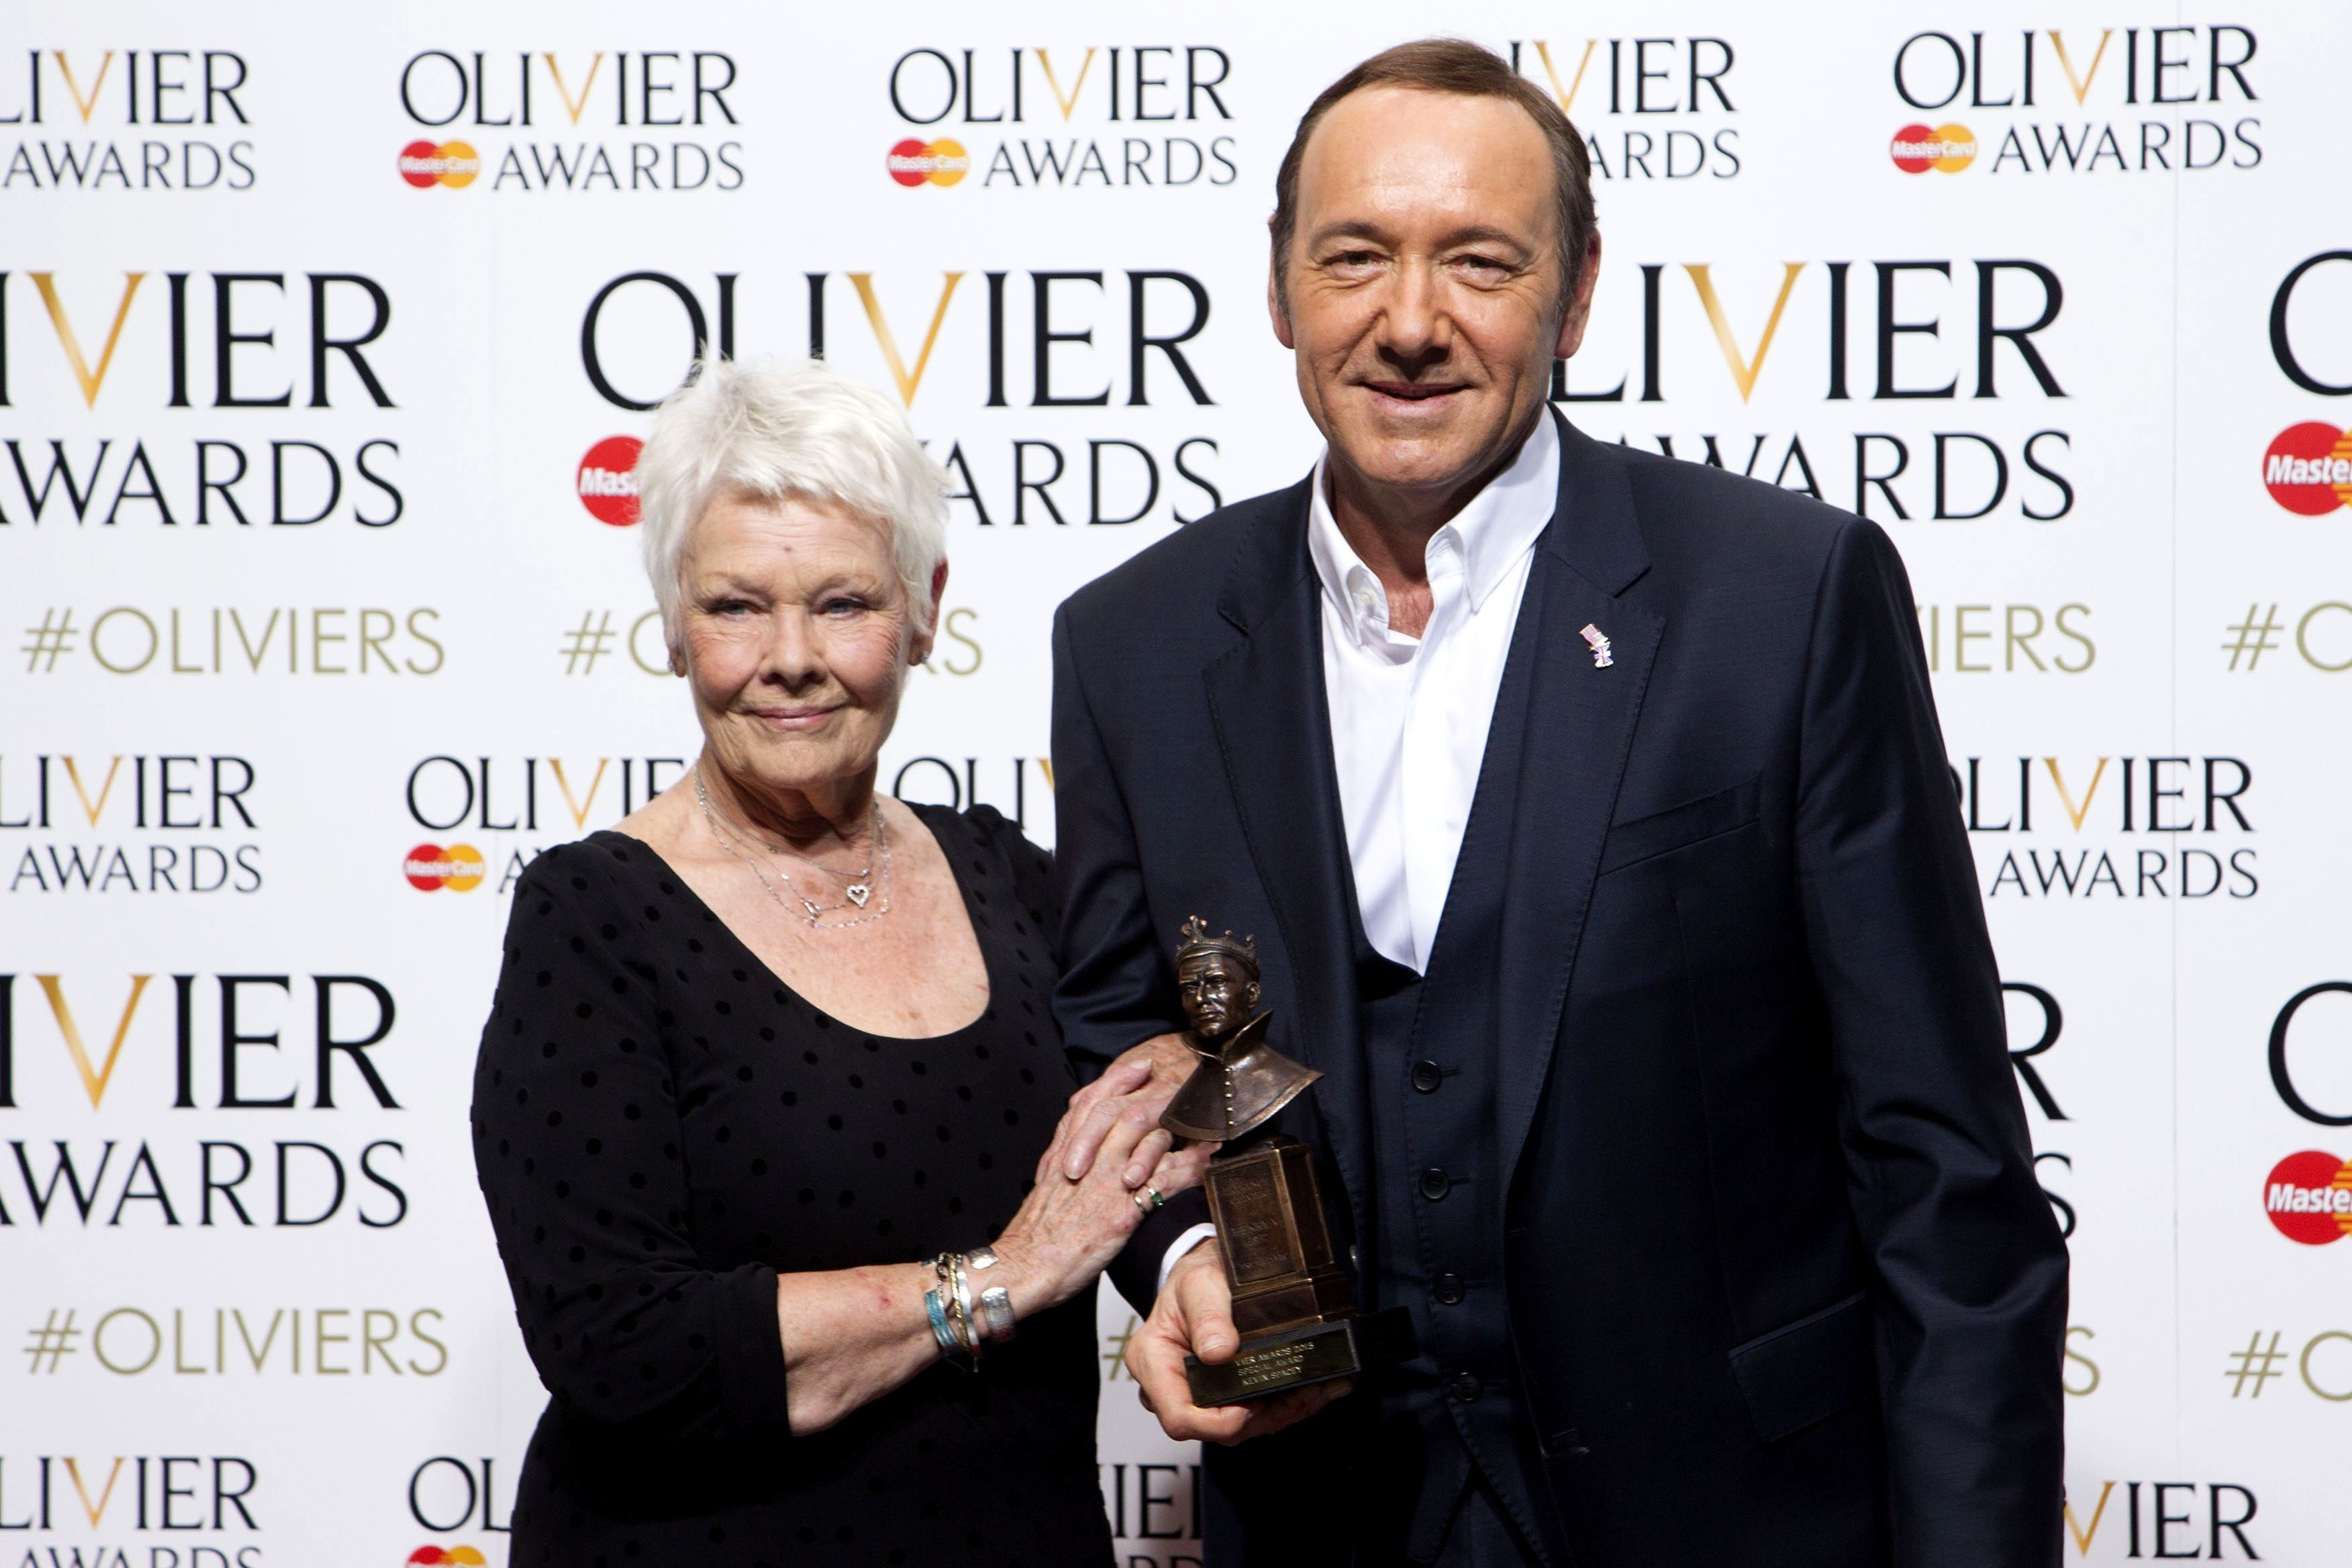 Judi Dench Risks Backlash By Defending 'Good Friend' Kevin Spacey After Sexual Misconduct